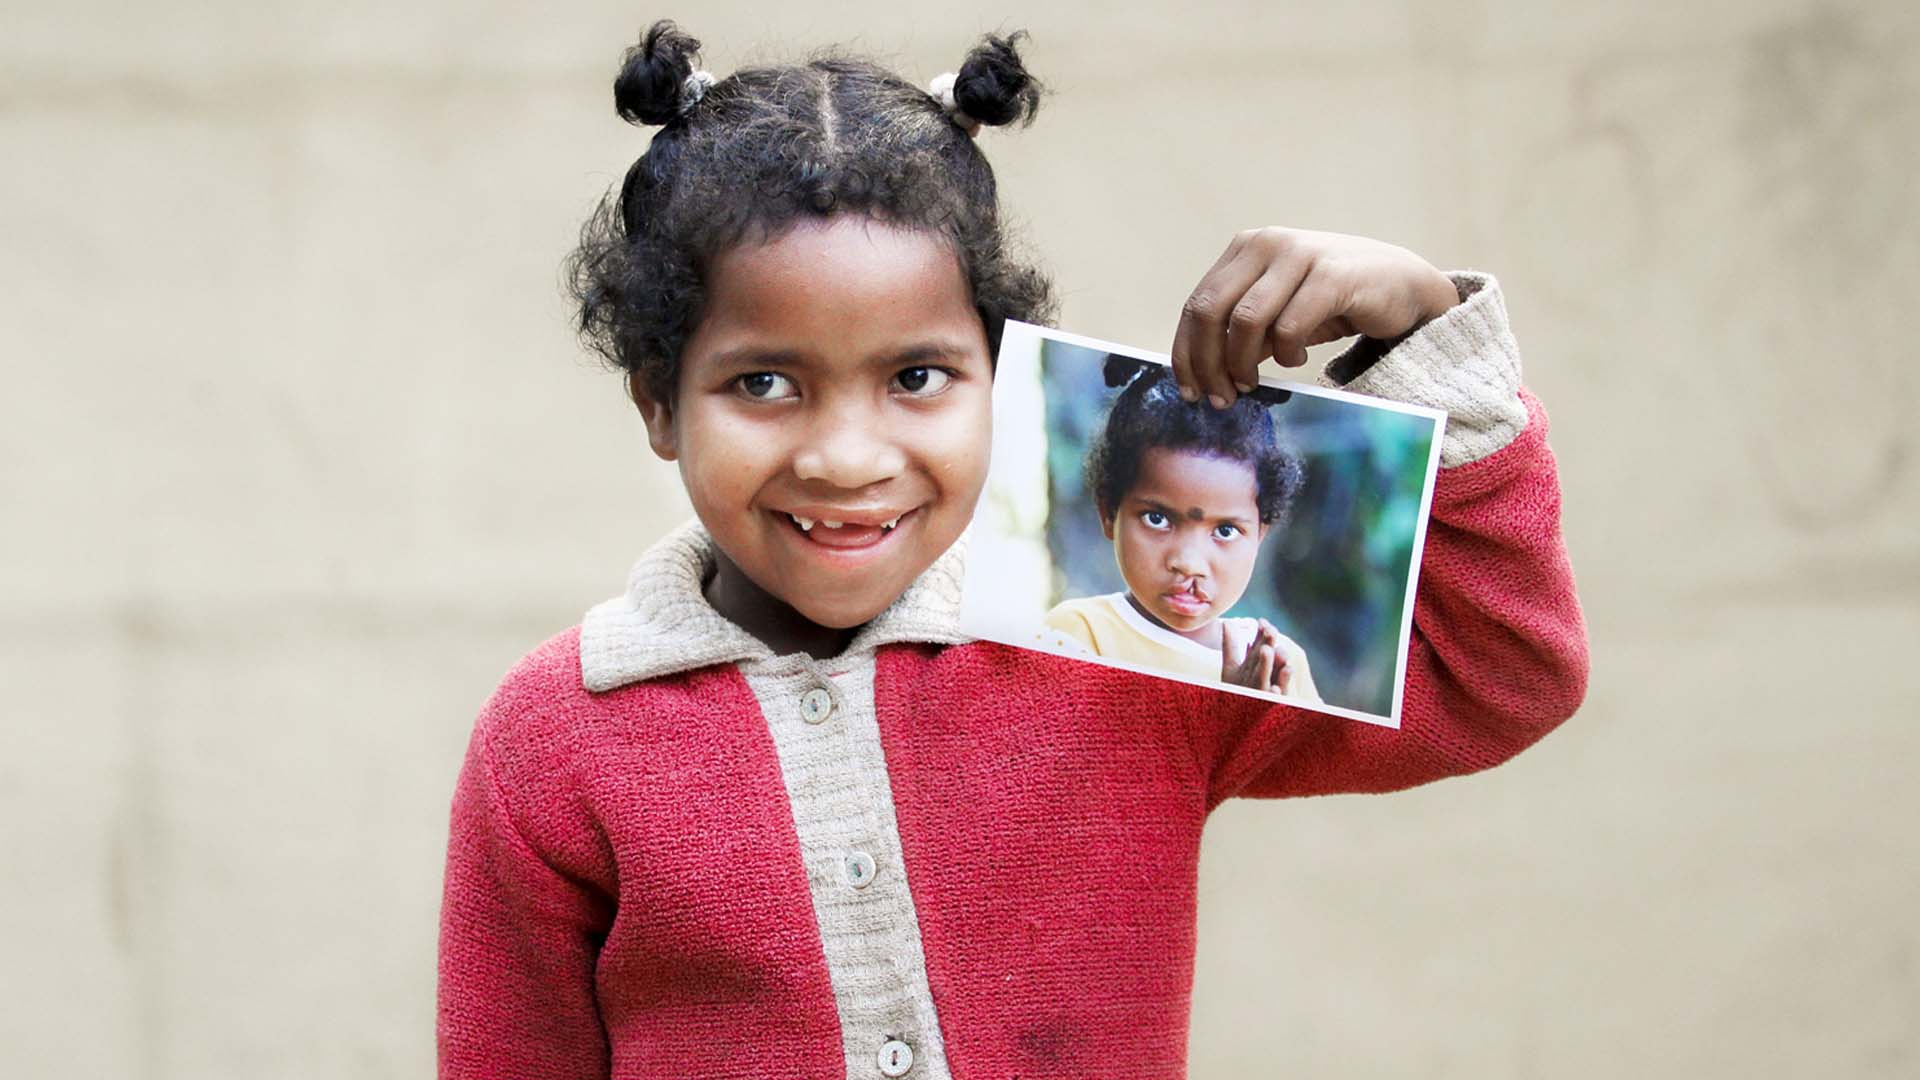 Girl holding picture of herself with cleft lip